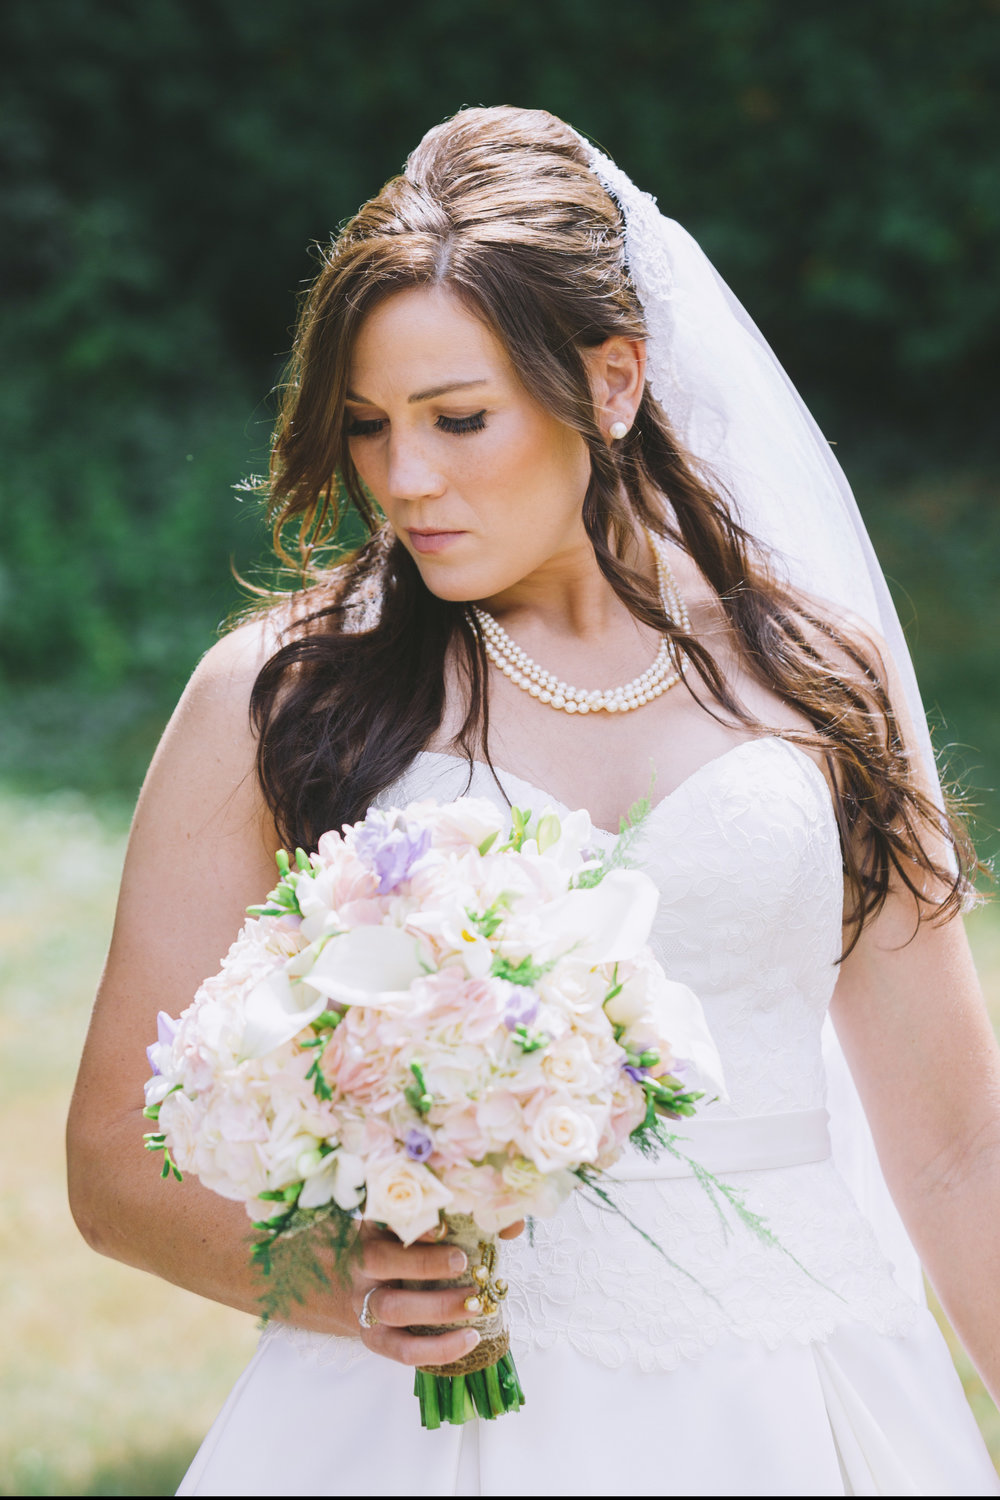 Bride protrait photo showing off bouquet of flowers